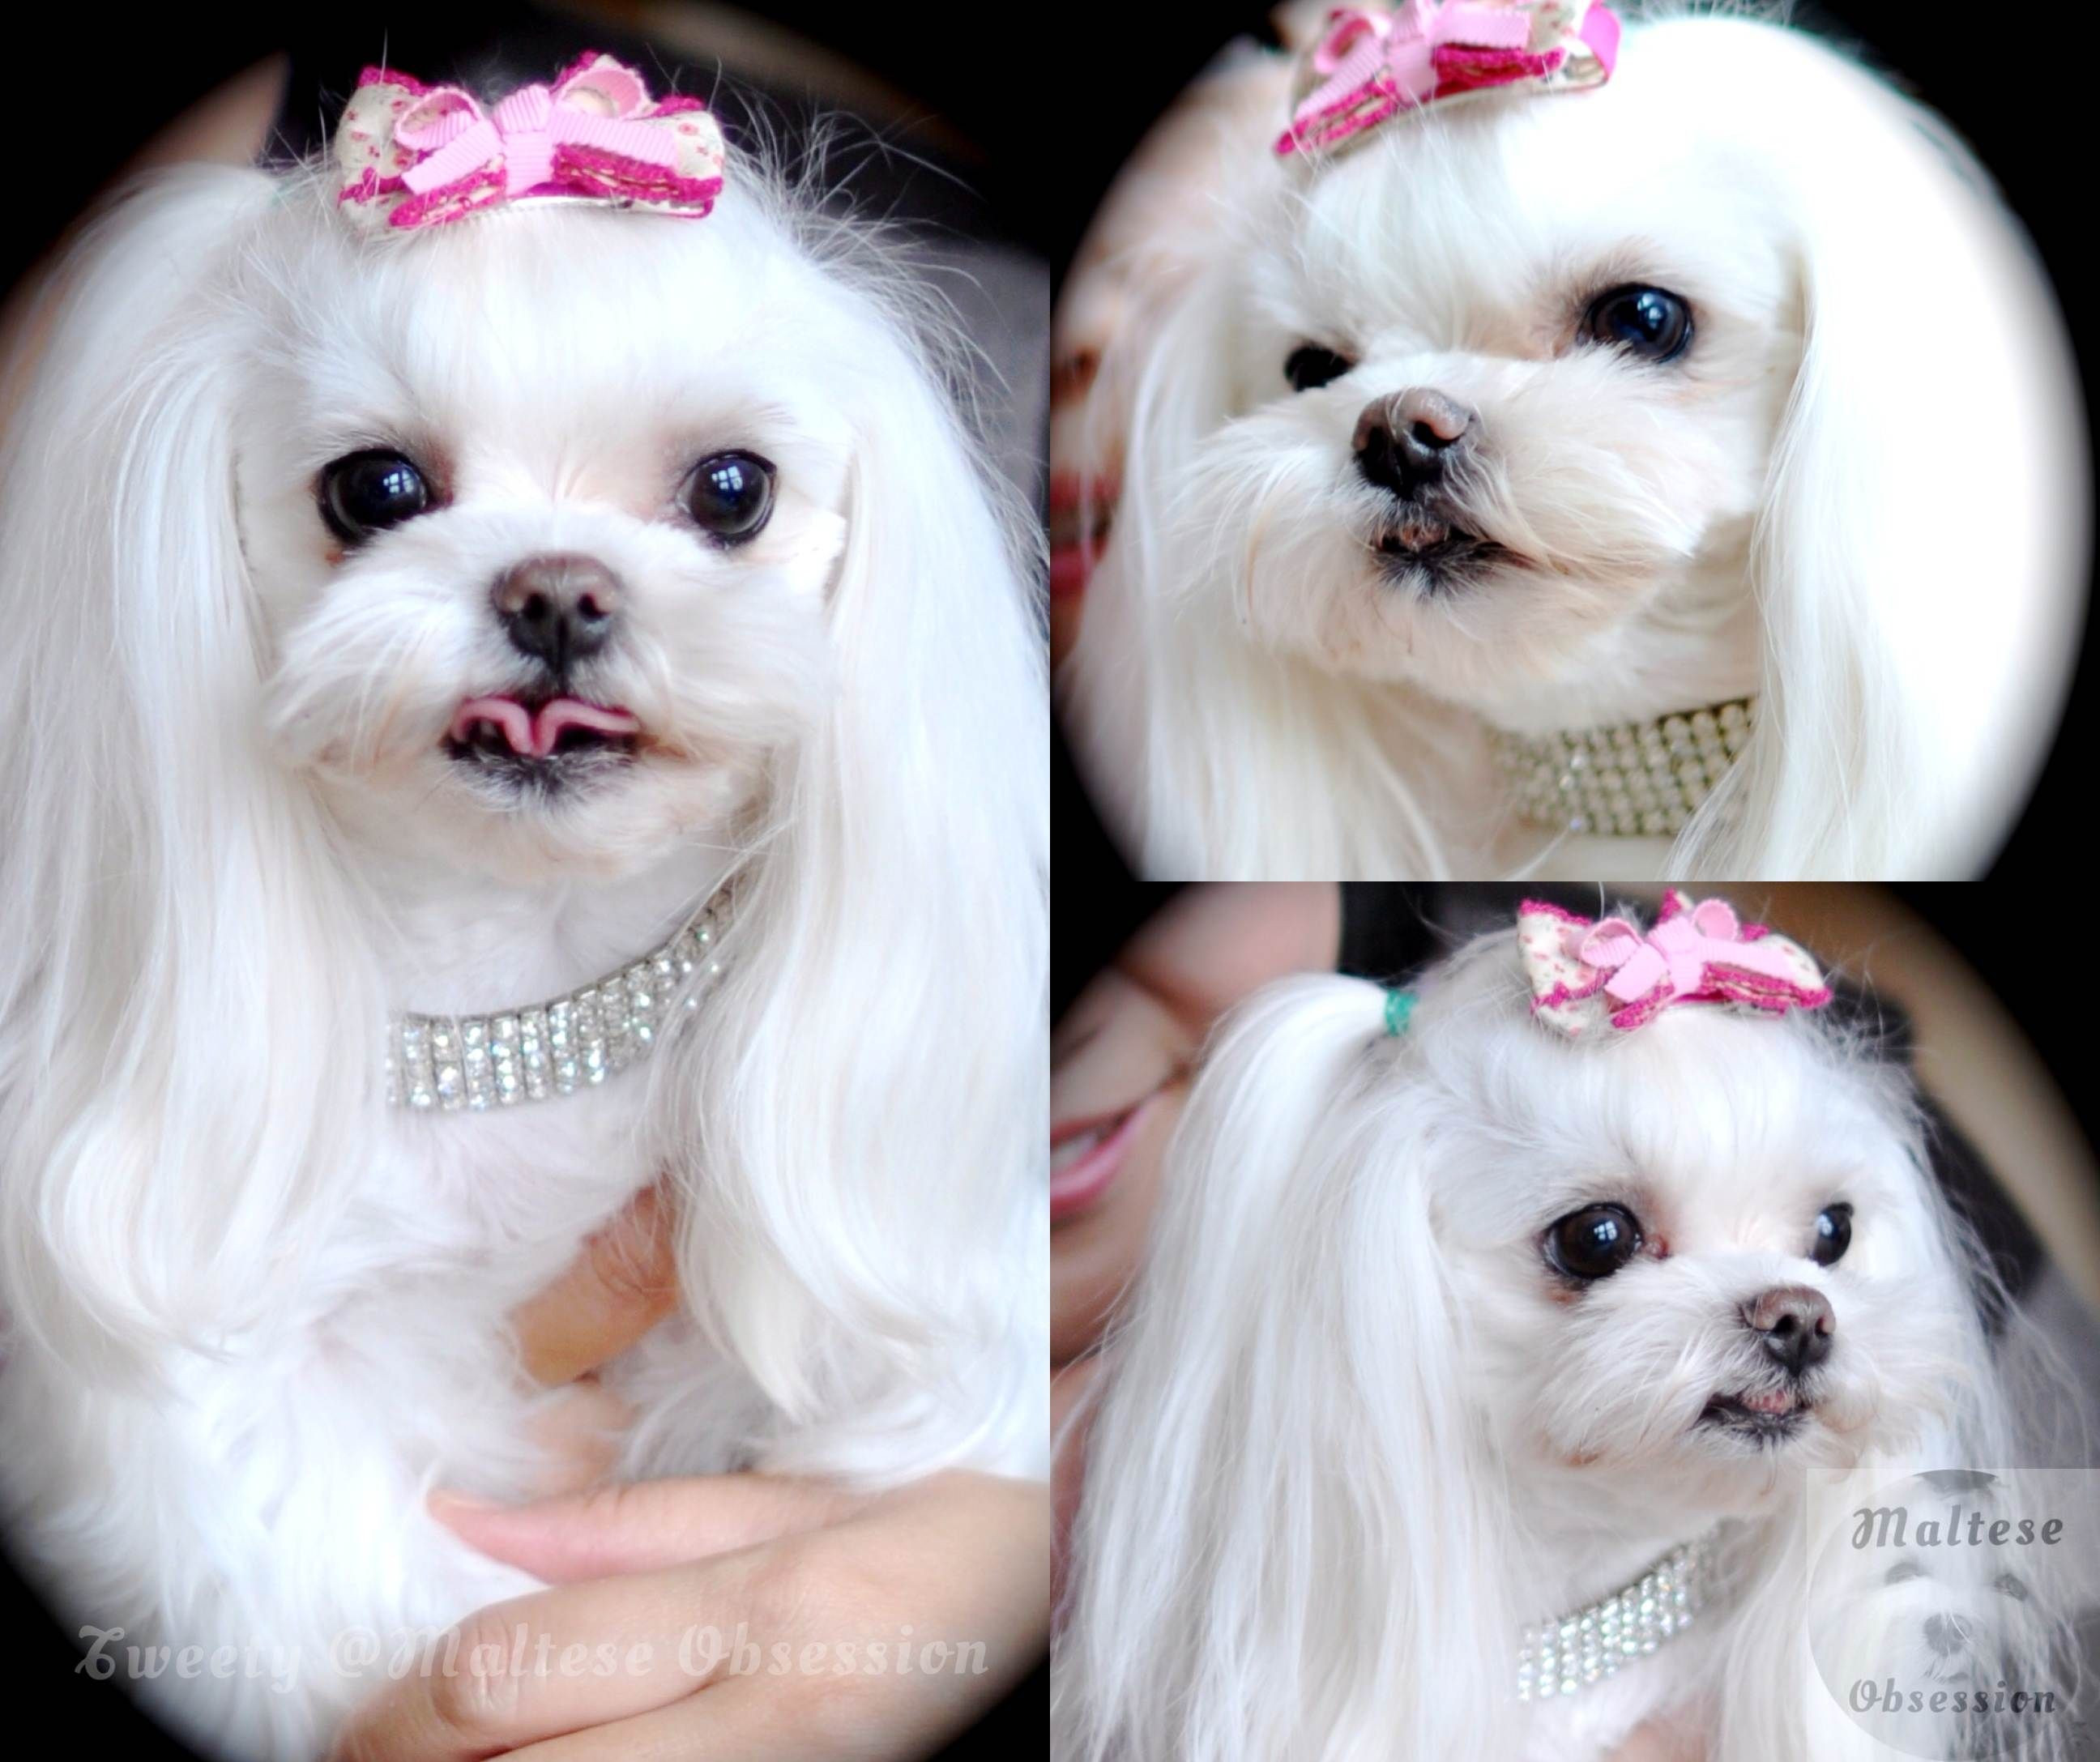 Best ideas about Female Maltese Haircuts . Save or Pin female maltese dog haircuts maltese hairstyles malt 234 s Now.